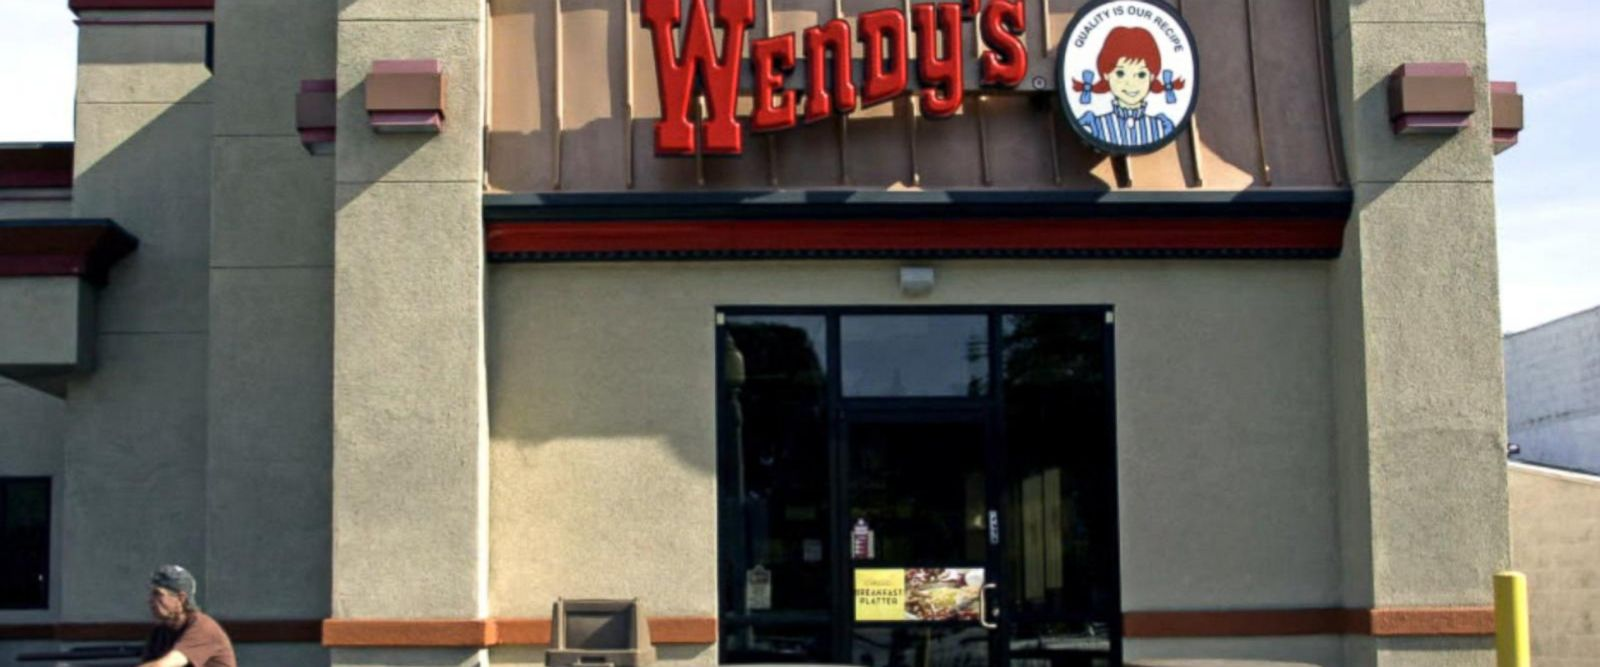 VIDEO: Wendy's adding self-order kiosks